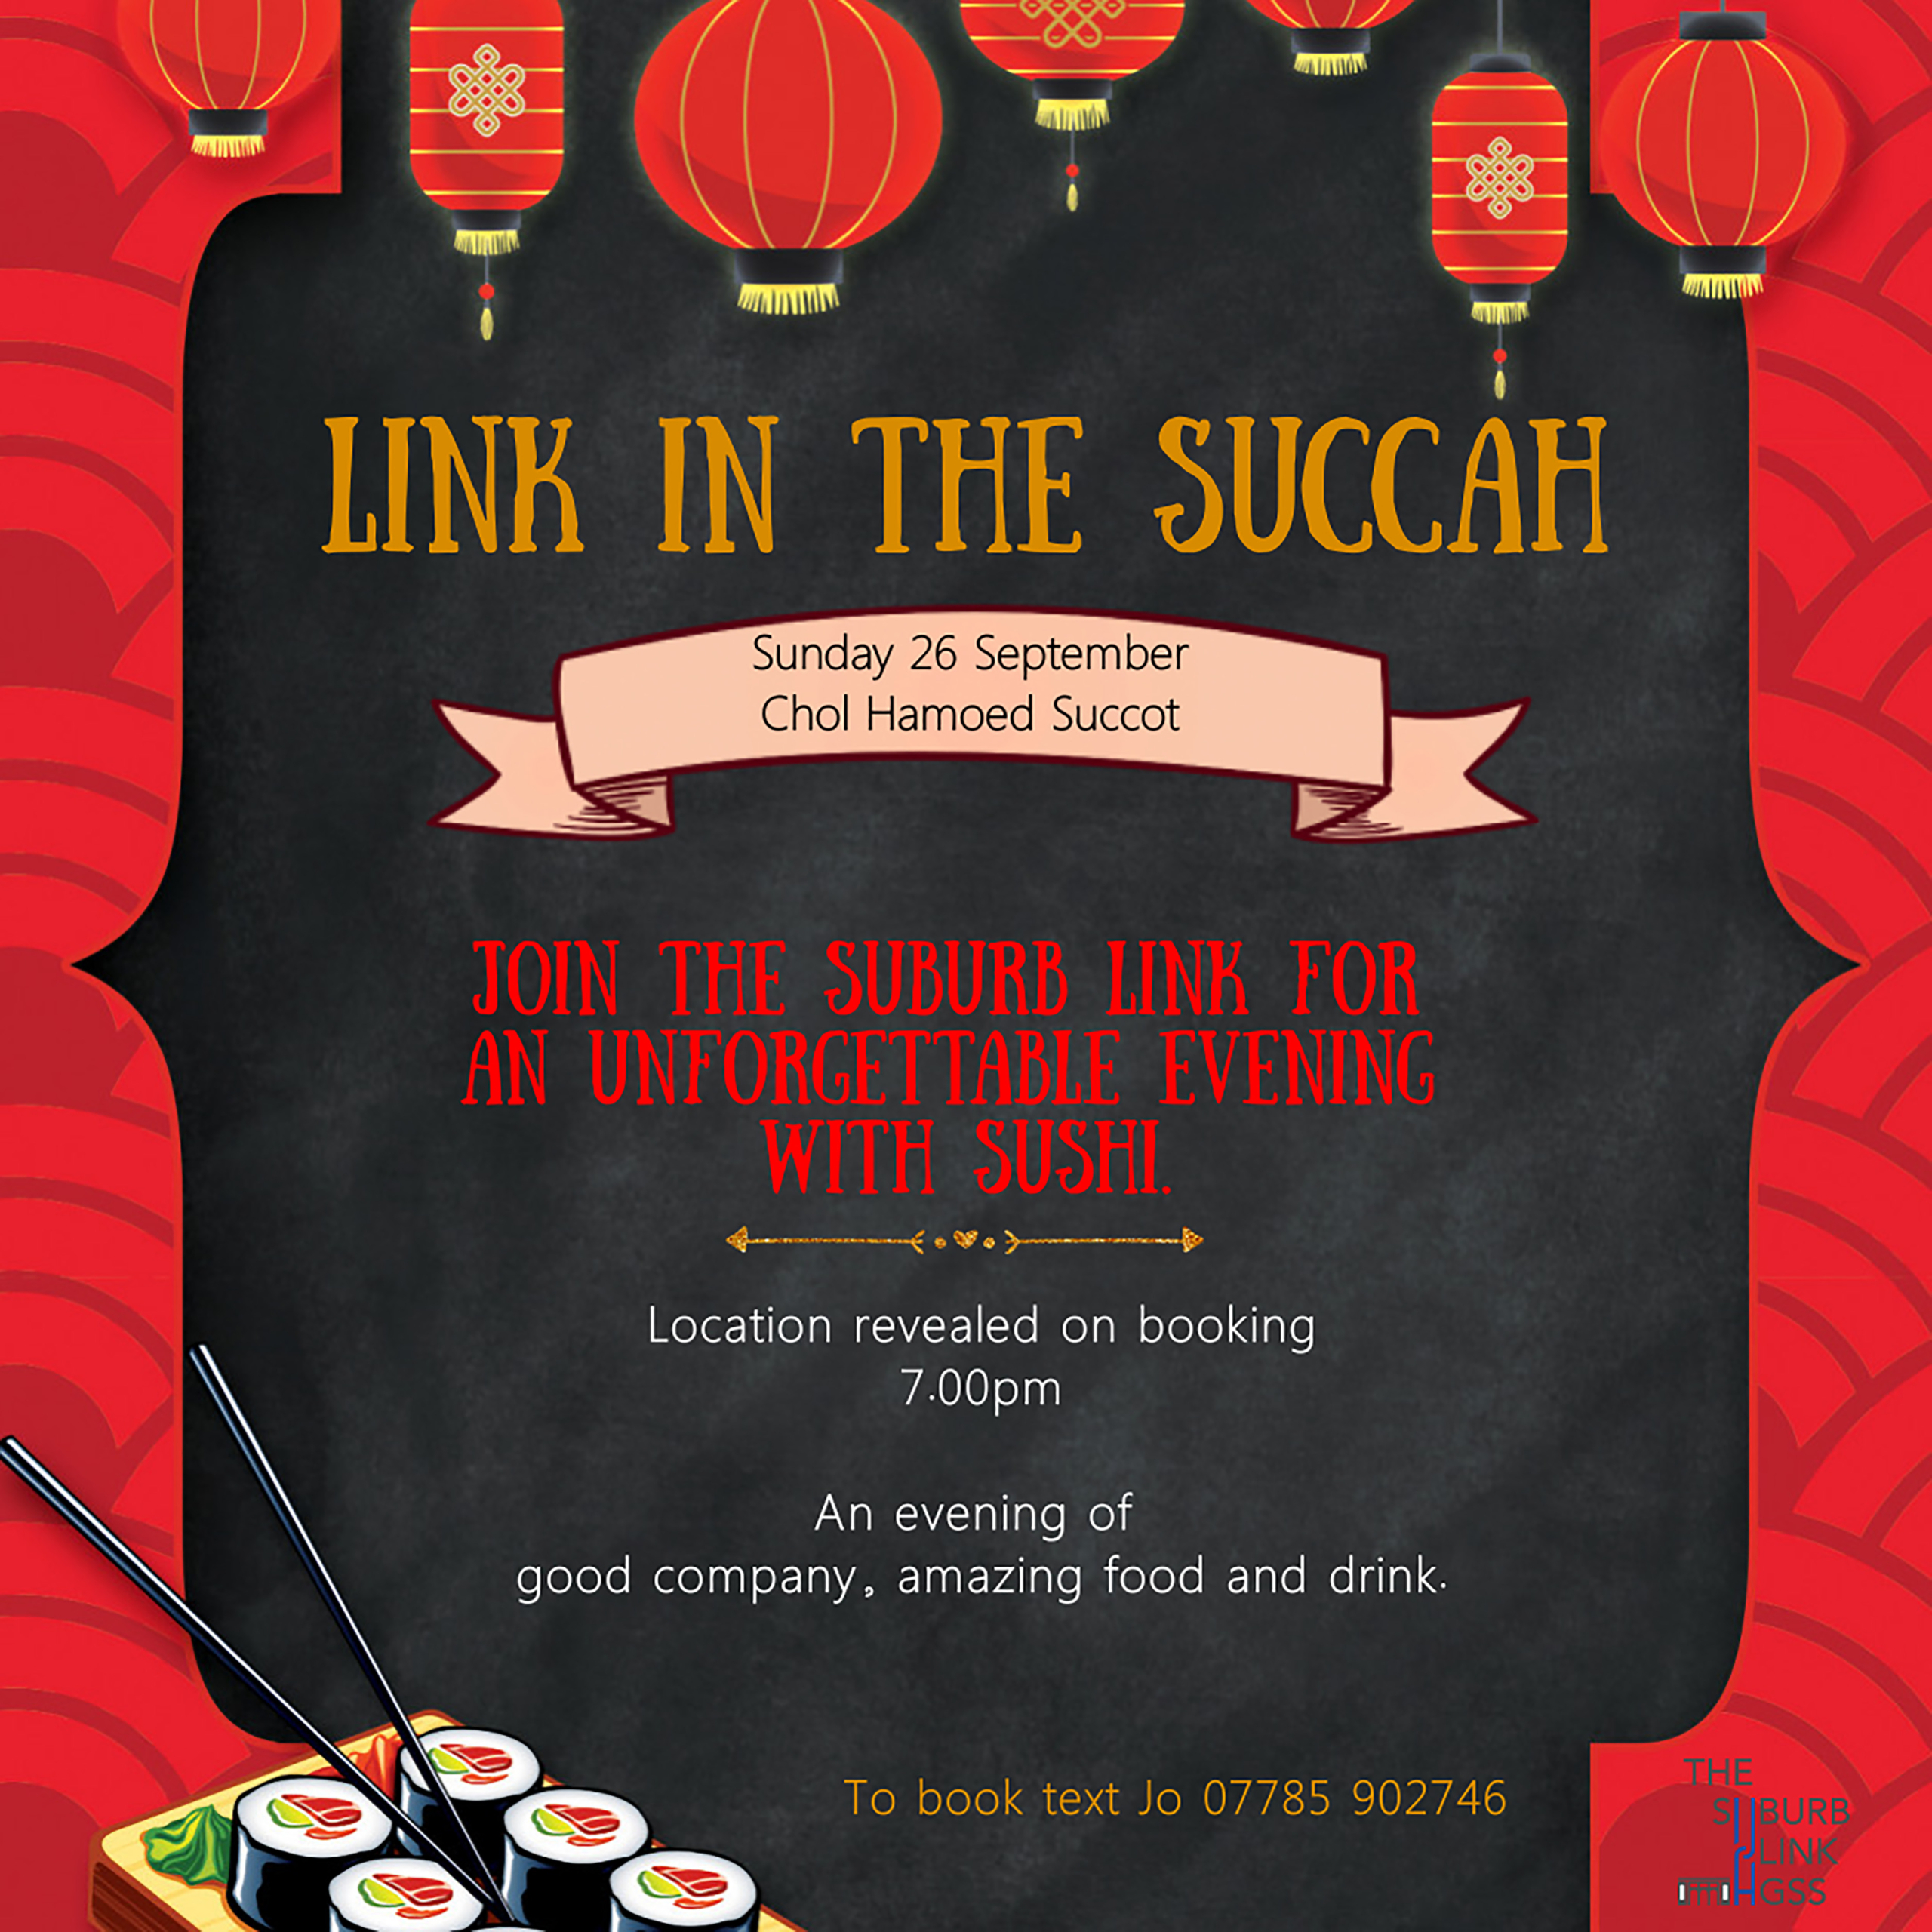 Link in the Succah @ TBC